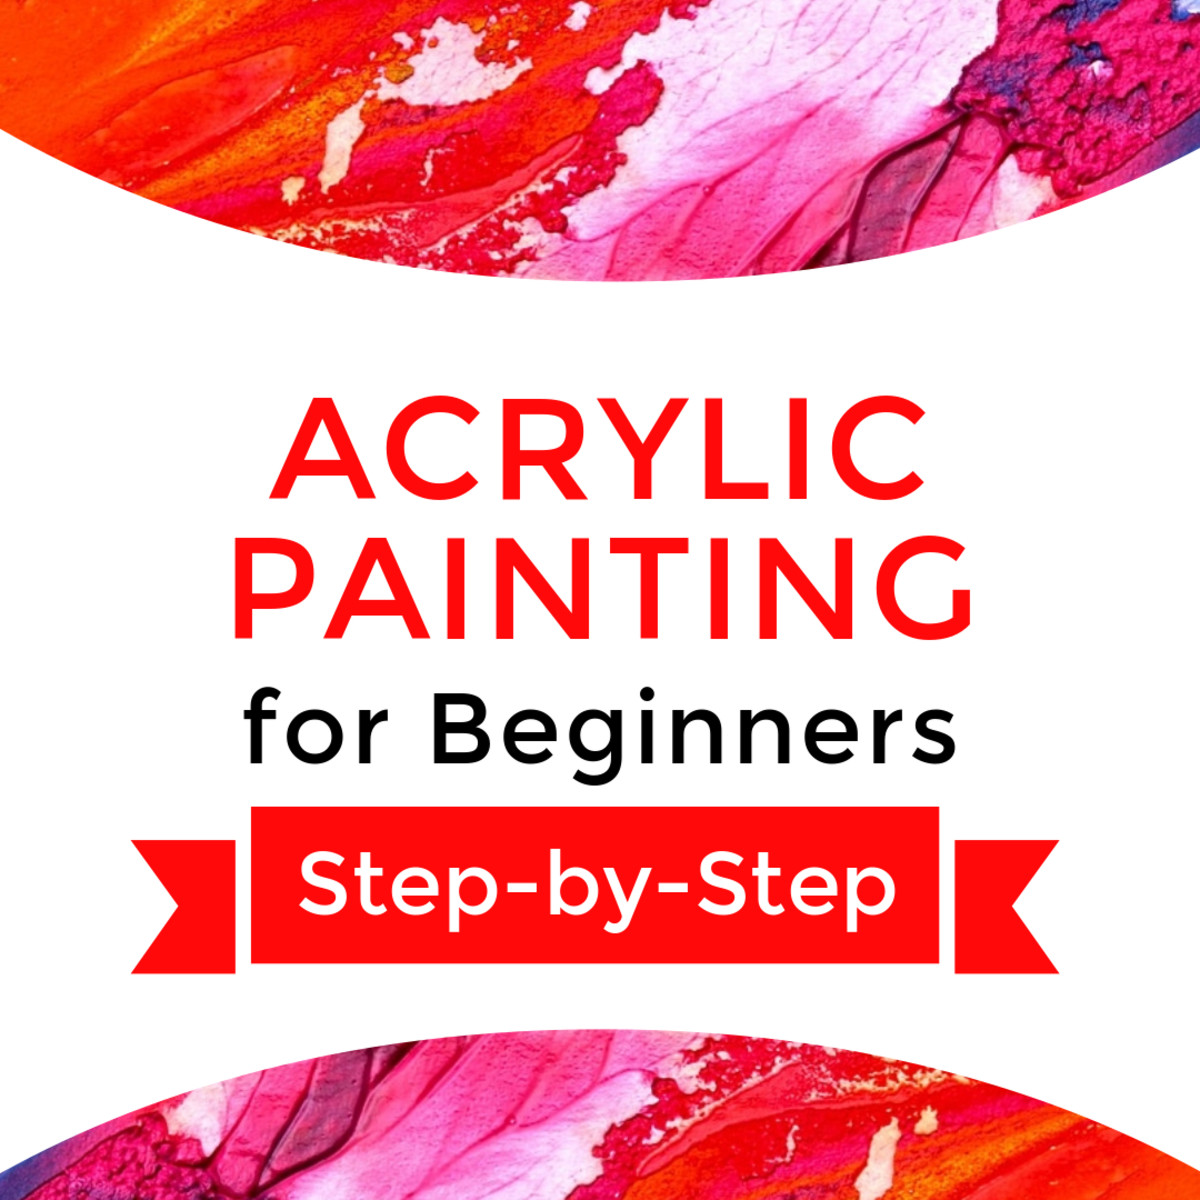 Acrylic painting for beginners step-by-step.  An article explaining the seven supplies needed to paint with acrylics, how to get started, how to plan the painting composition, and how to proceed in the painting process.